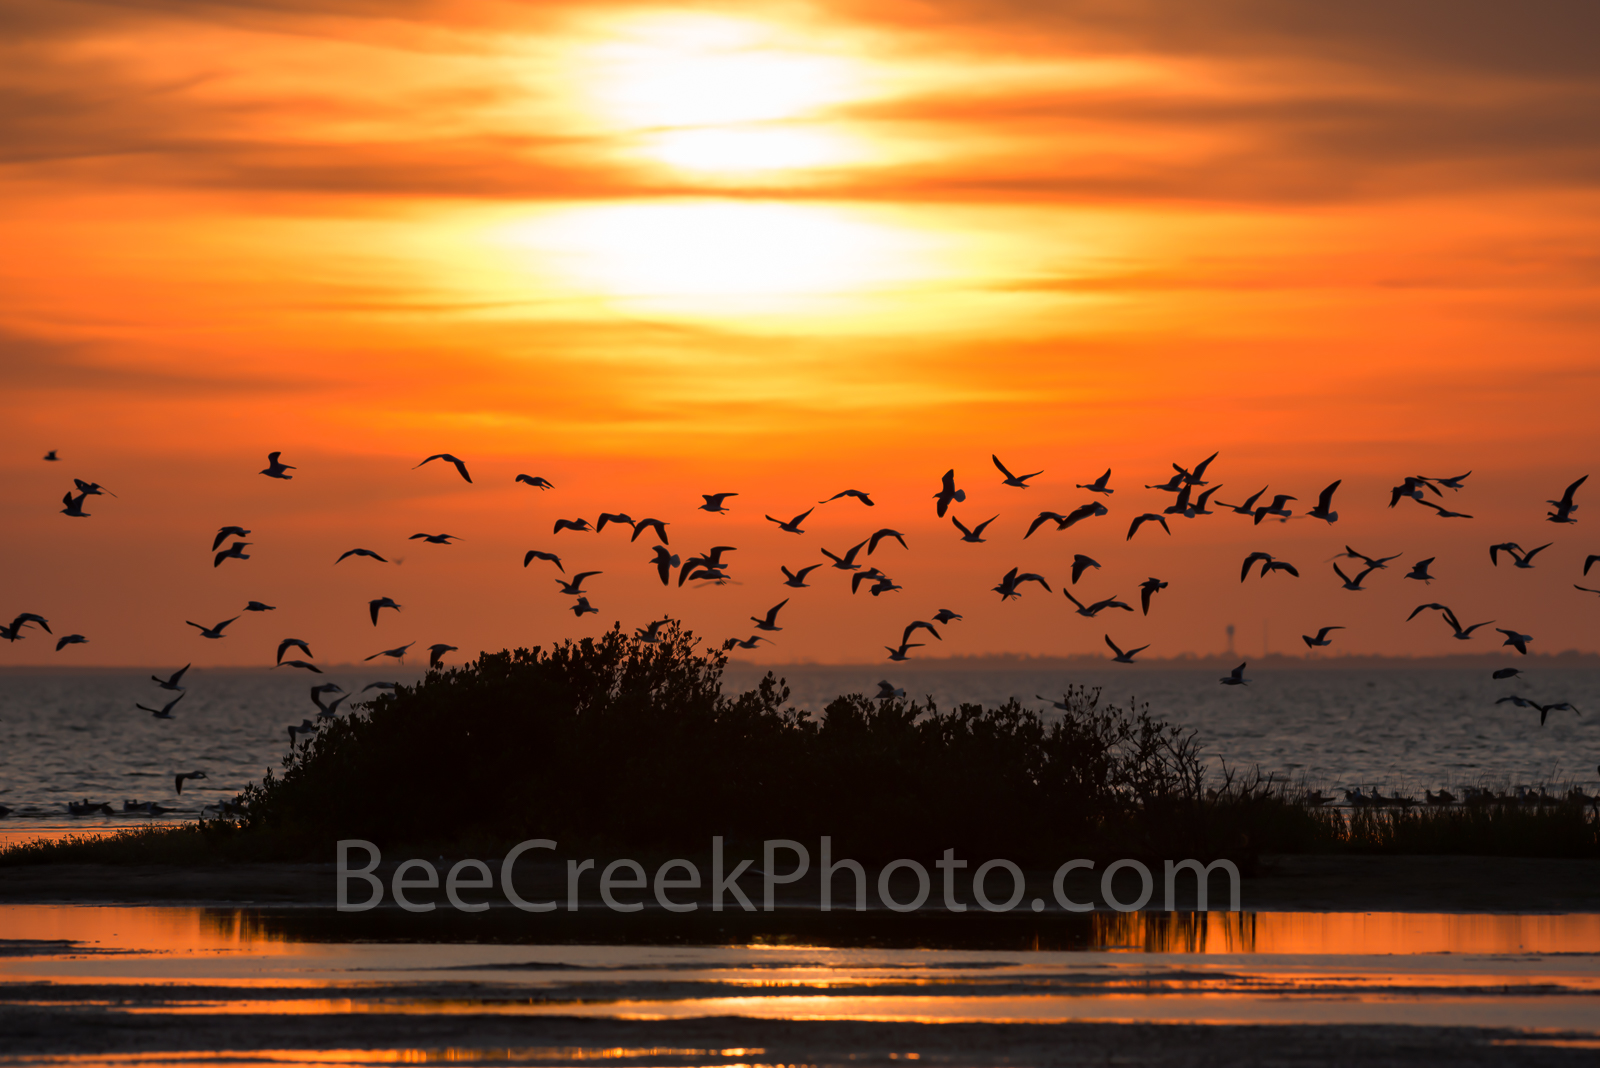 Golden Sky and Sea Birds Siloutte- Sea birds in siloutte at sunset at South Padre Island on the bay as the flock...